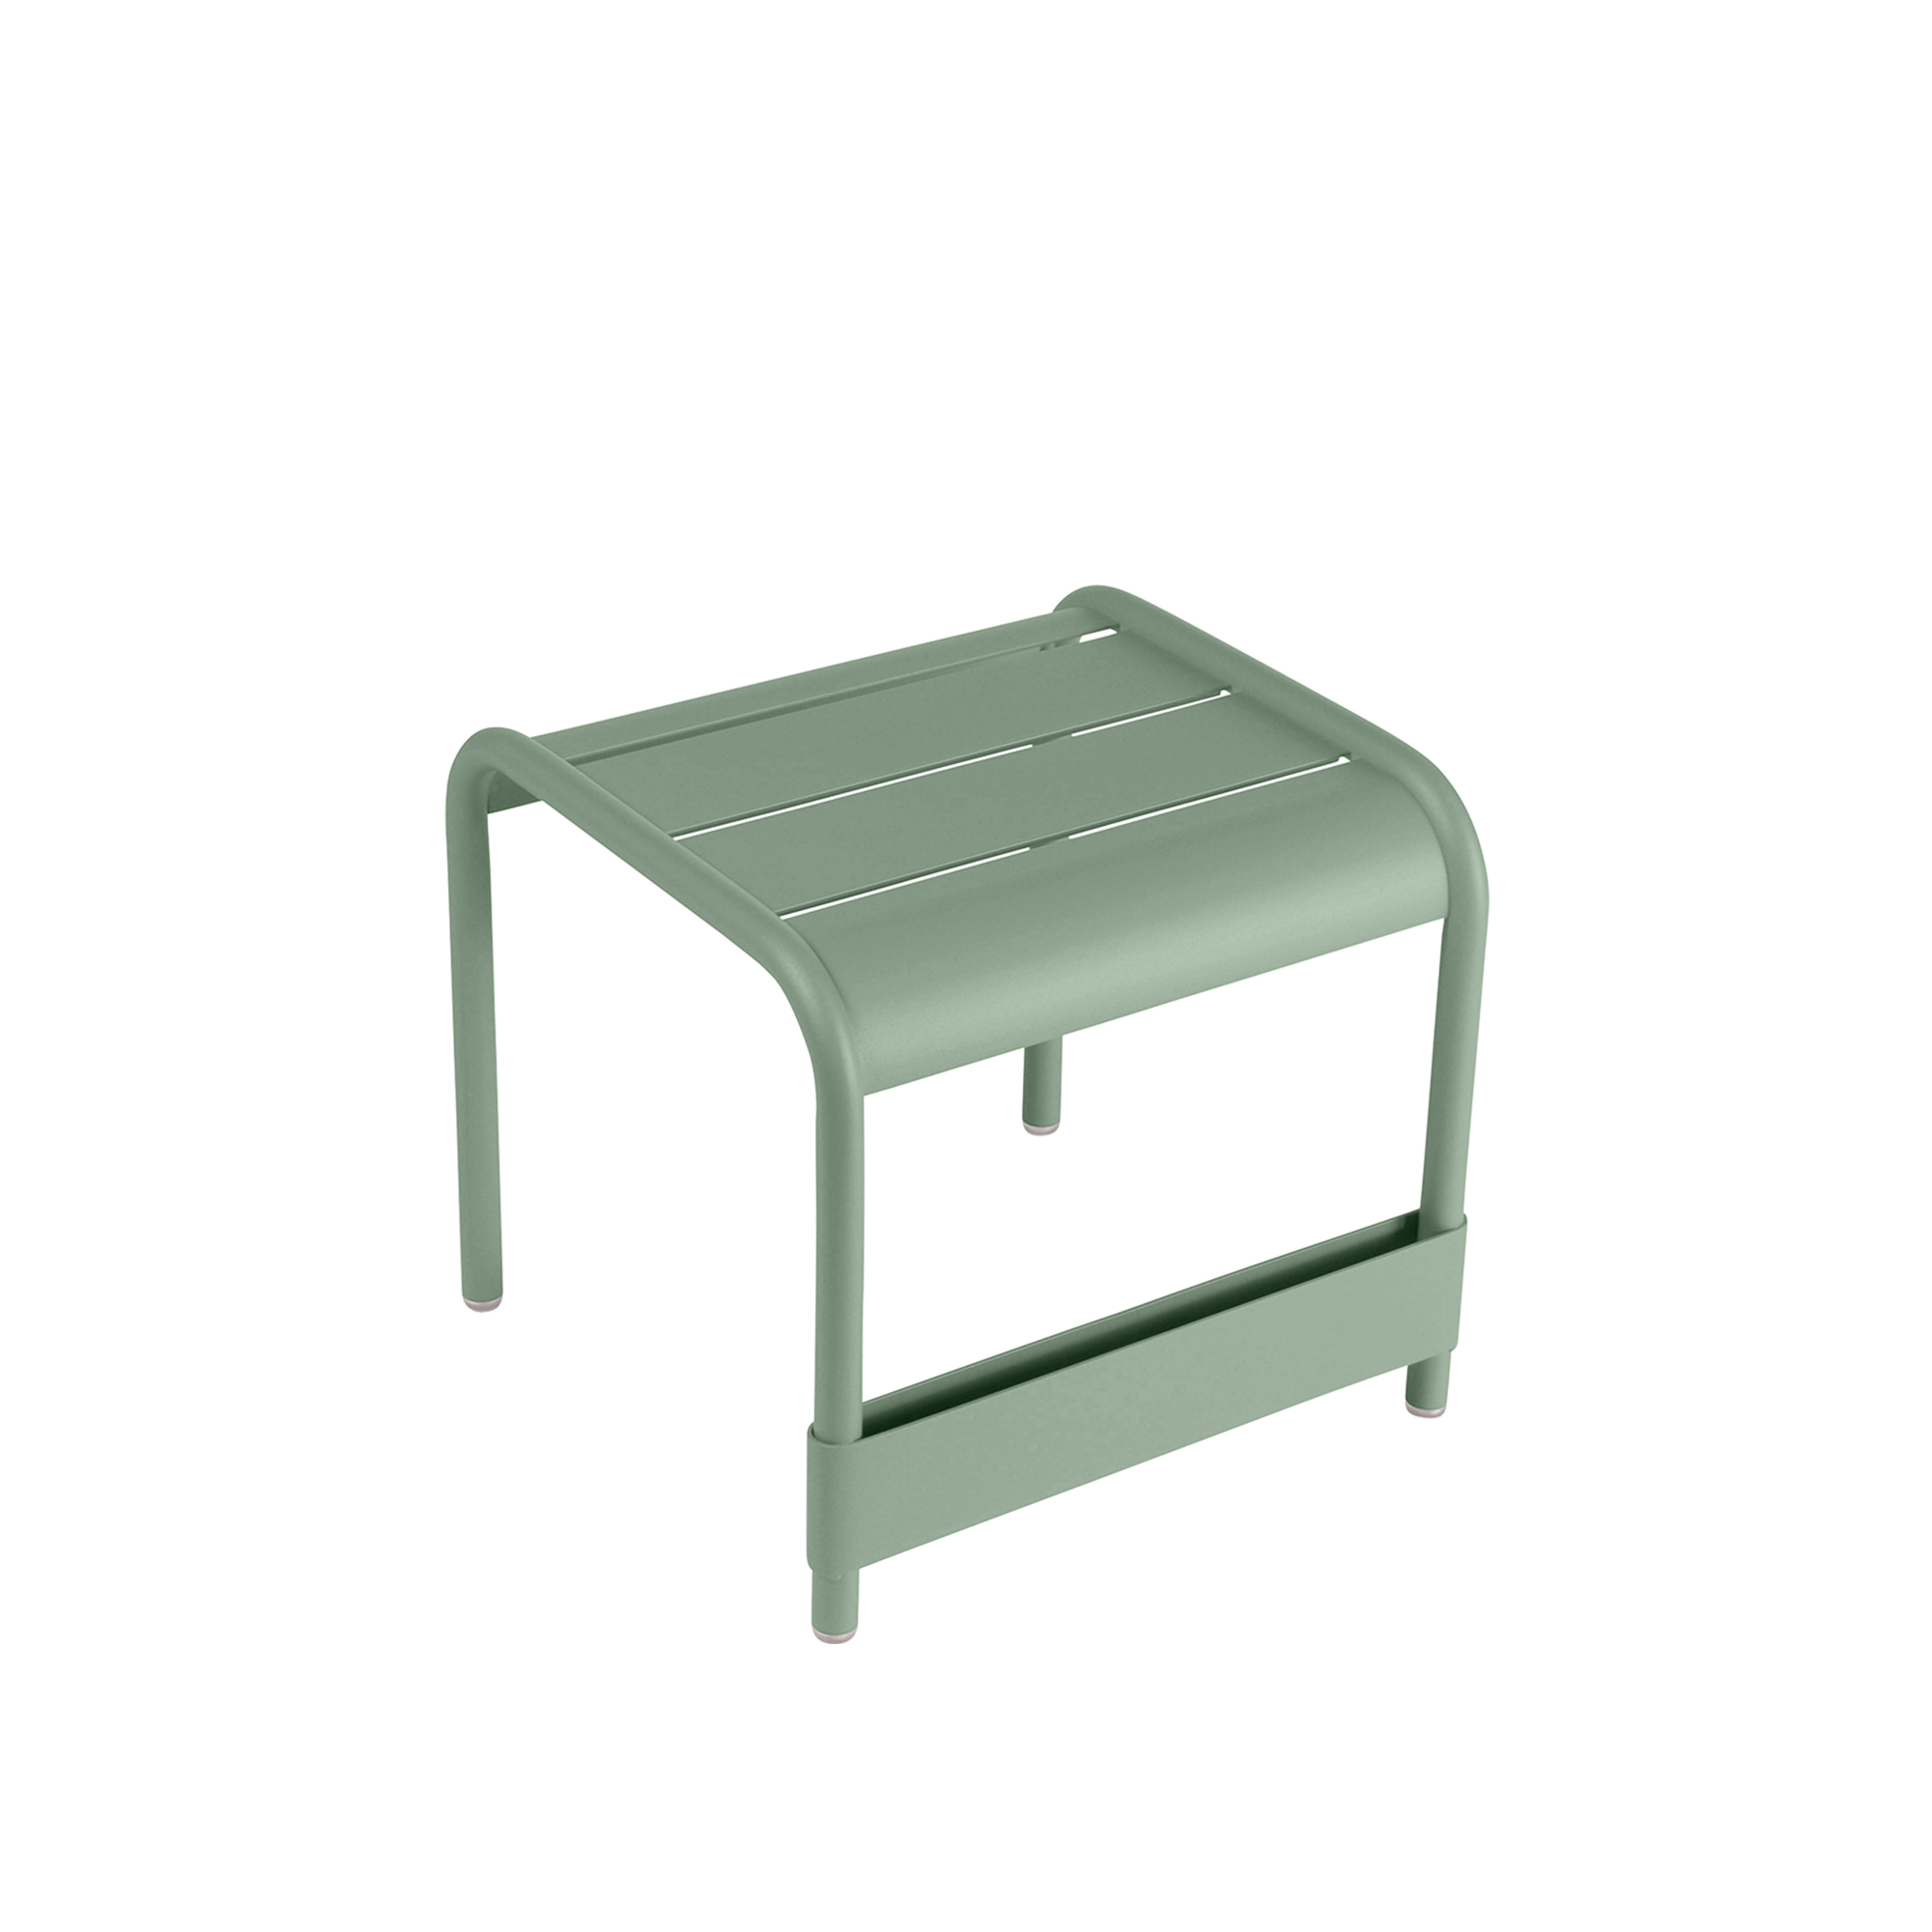 Luxembourg Small Low Table/Footrest